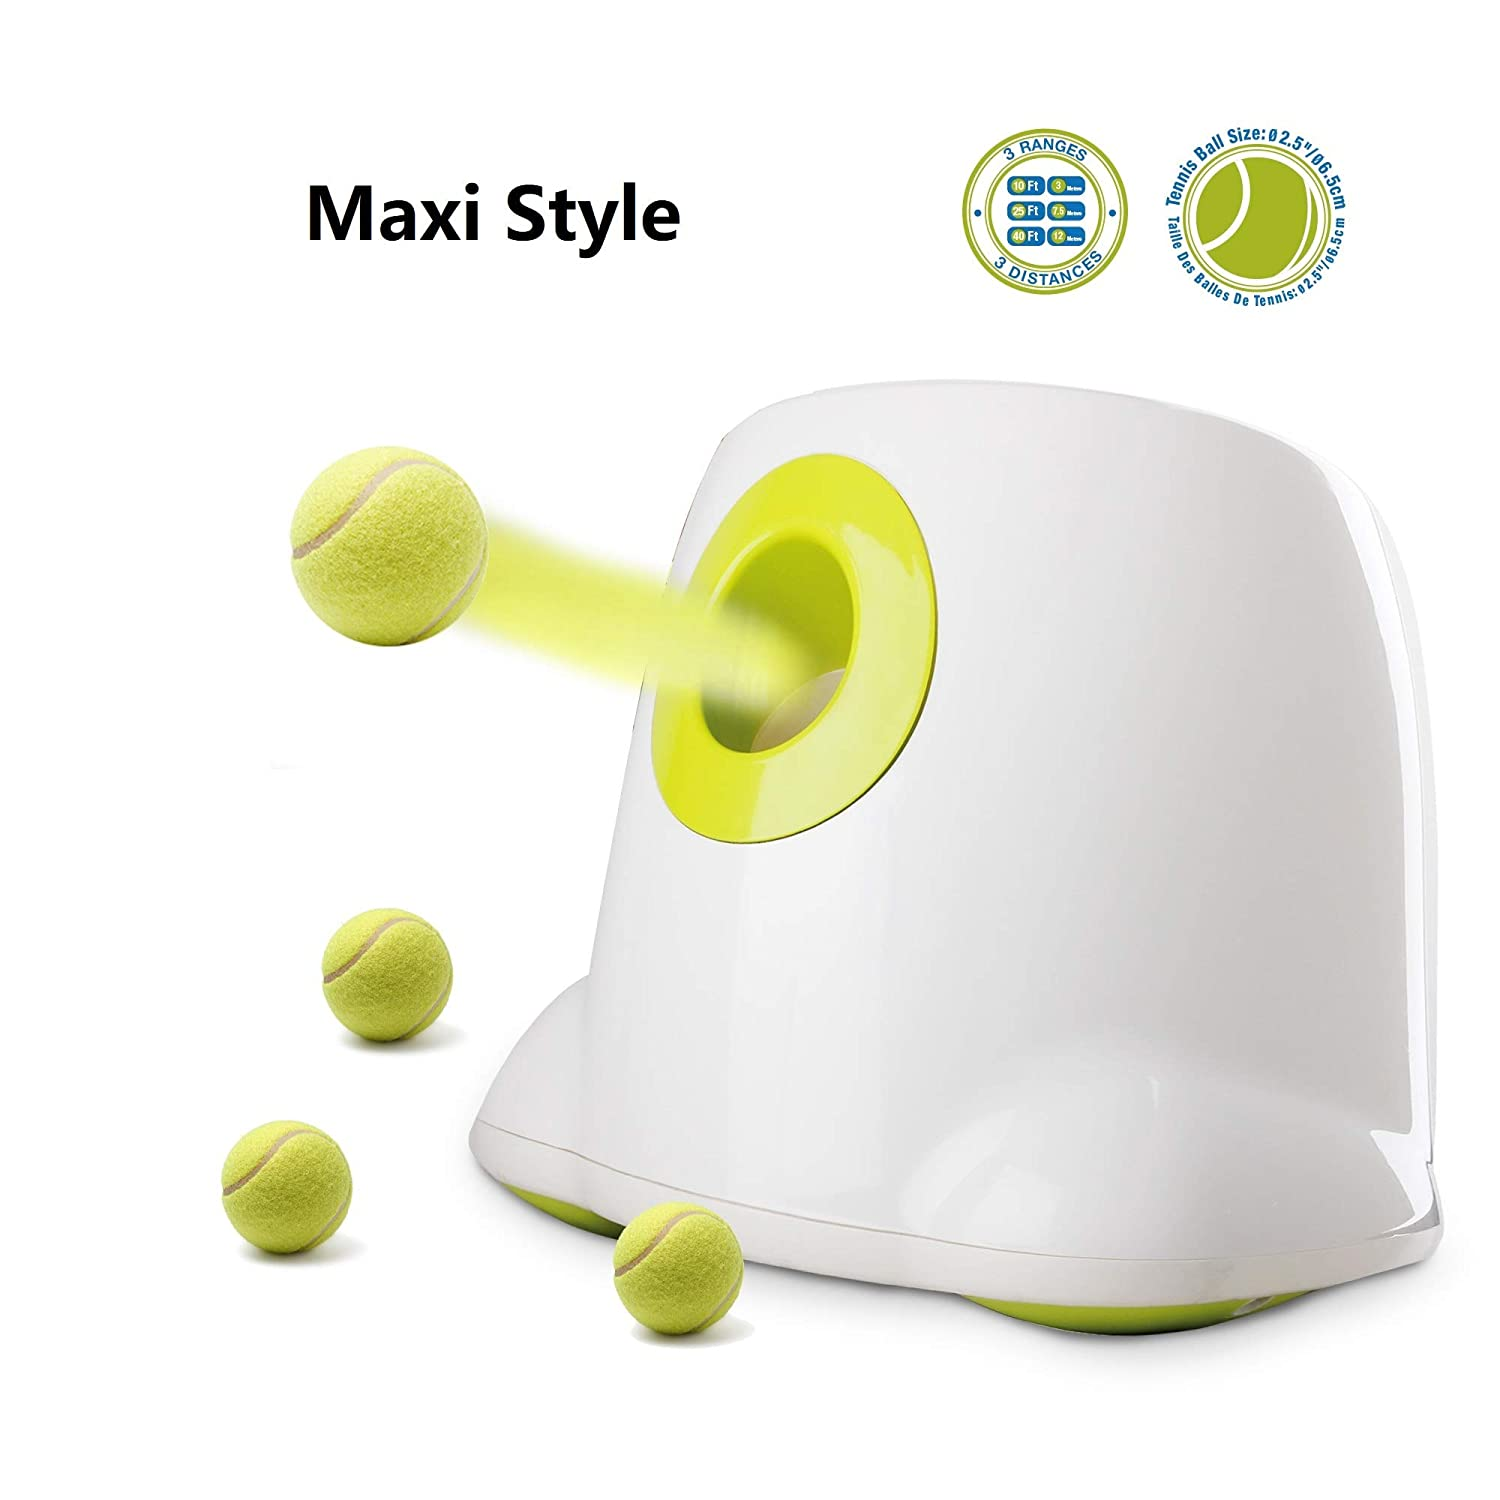 ALL FOR PAWS Hyperfetch Ultimate Throwing Toy (Maxi)